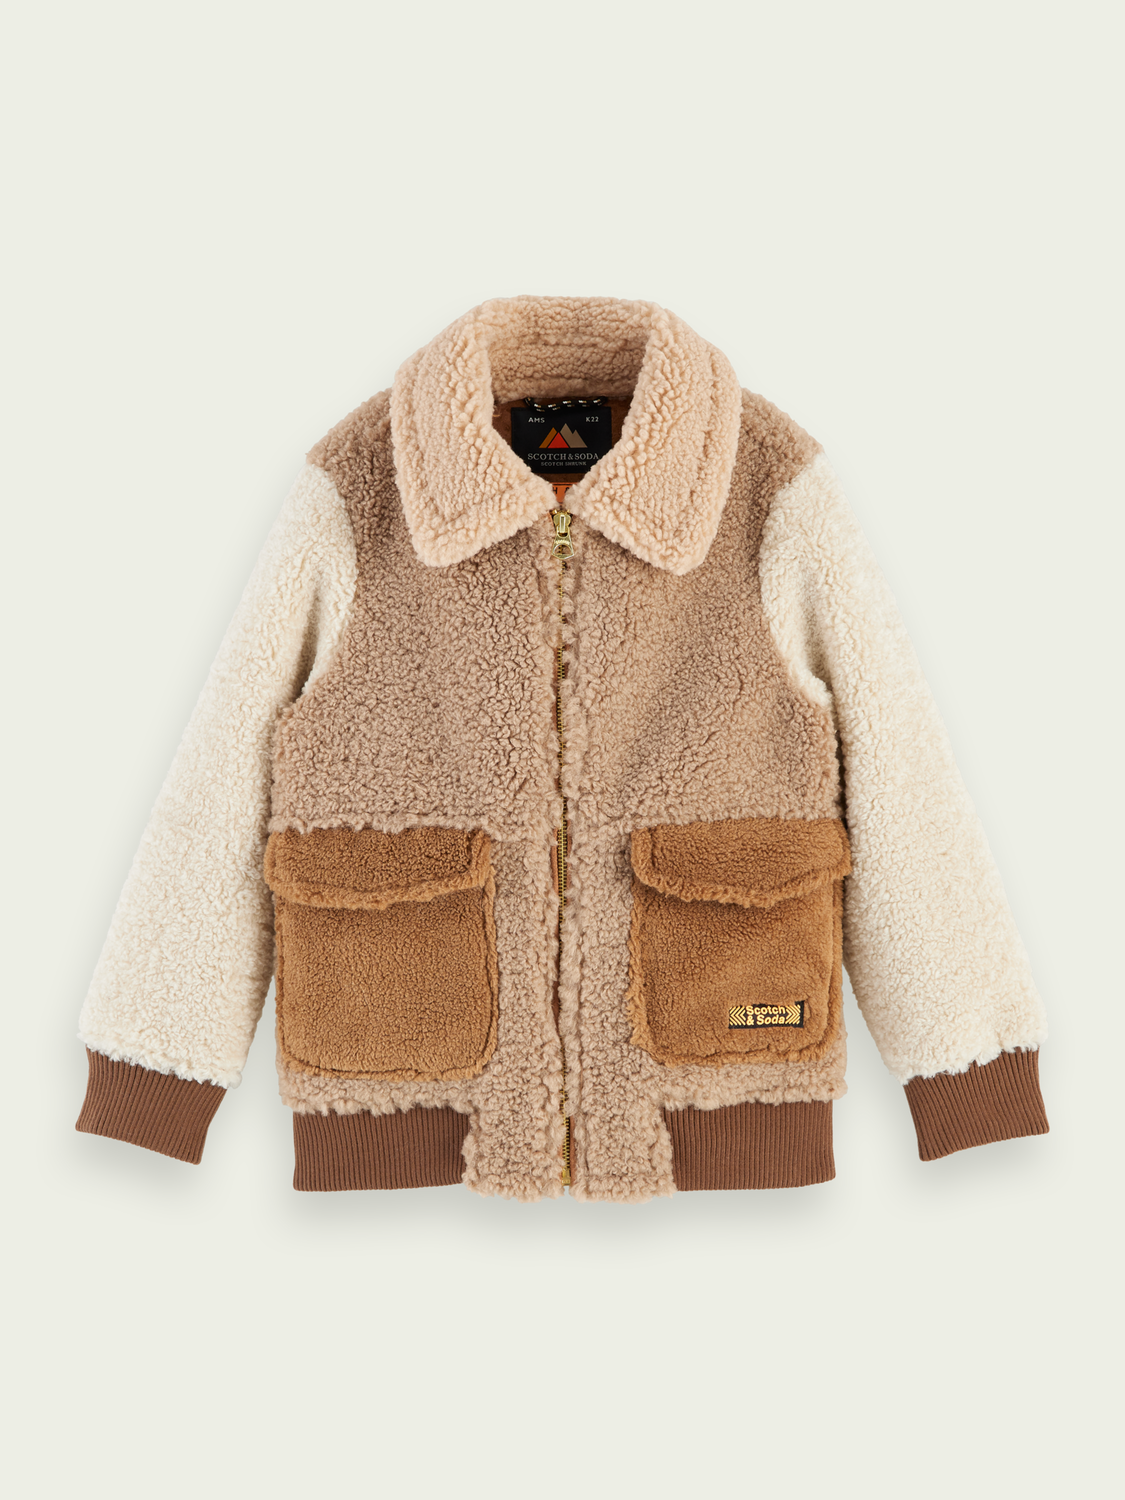 Boys Teddy bomber jacket